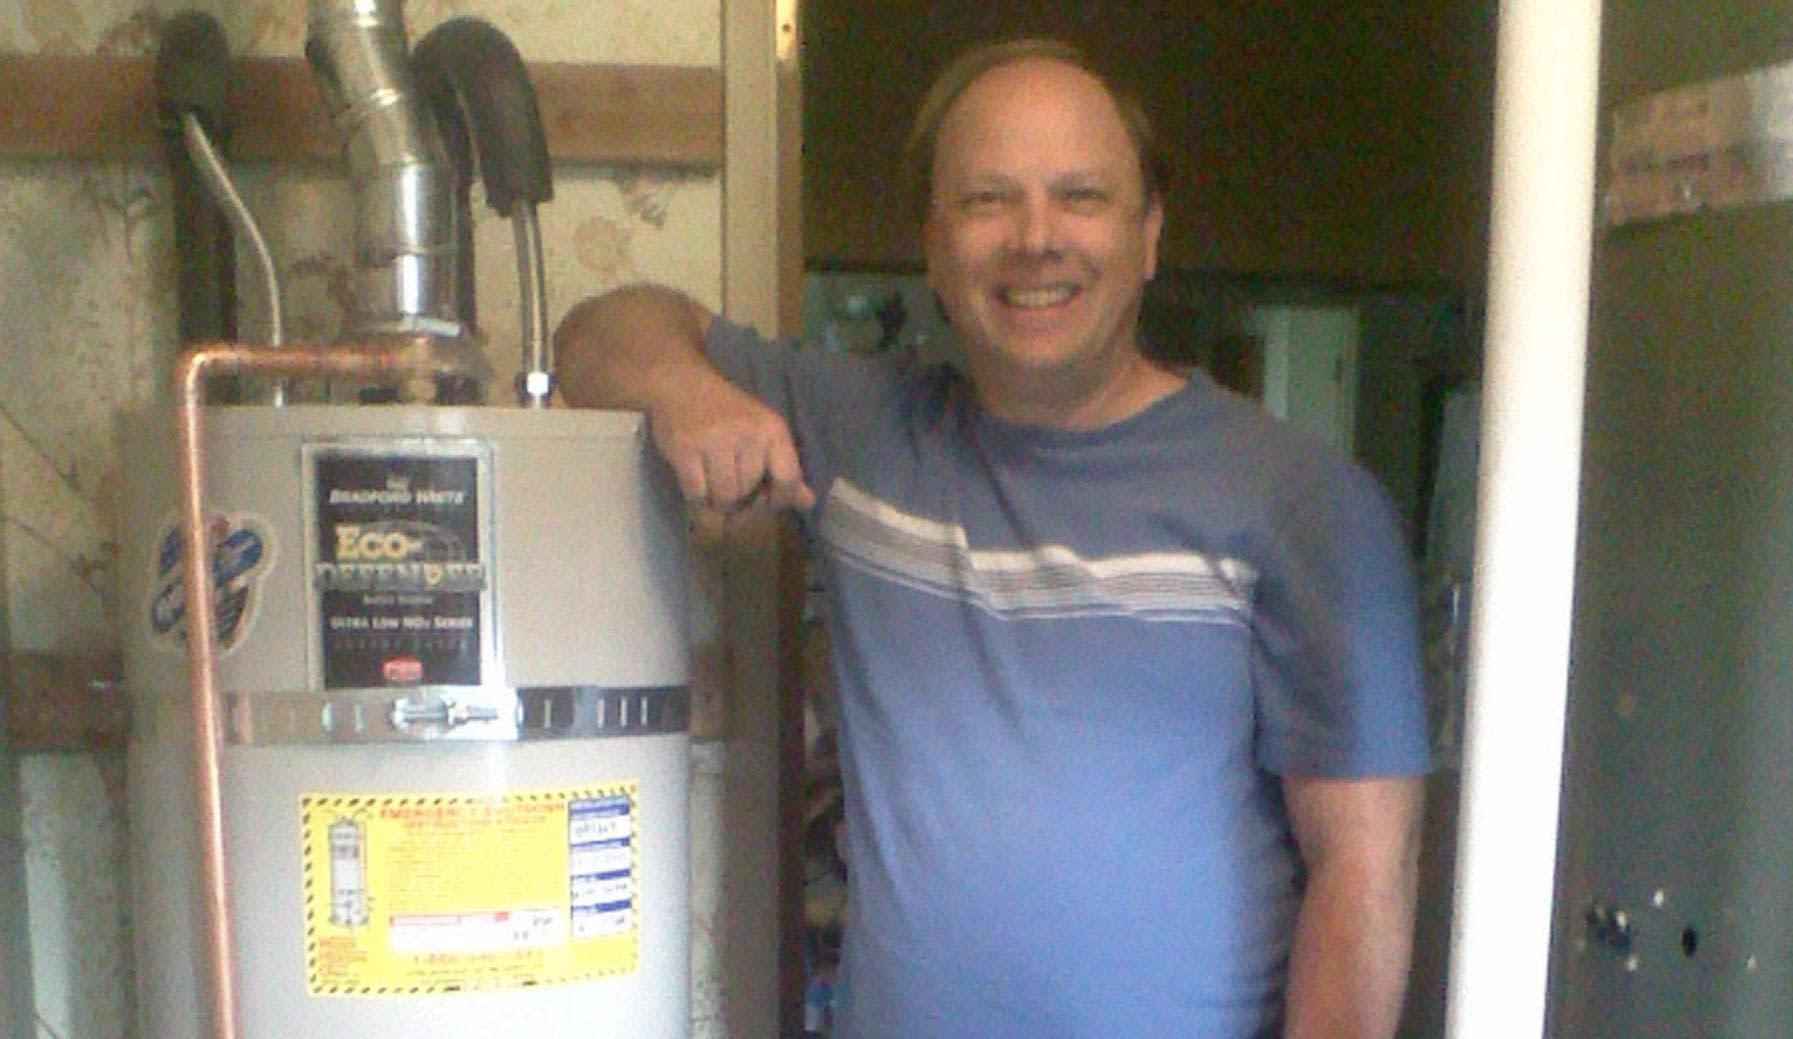 Another smiling customer with his brand new water heater! San Diego